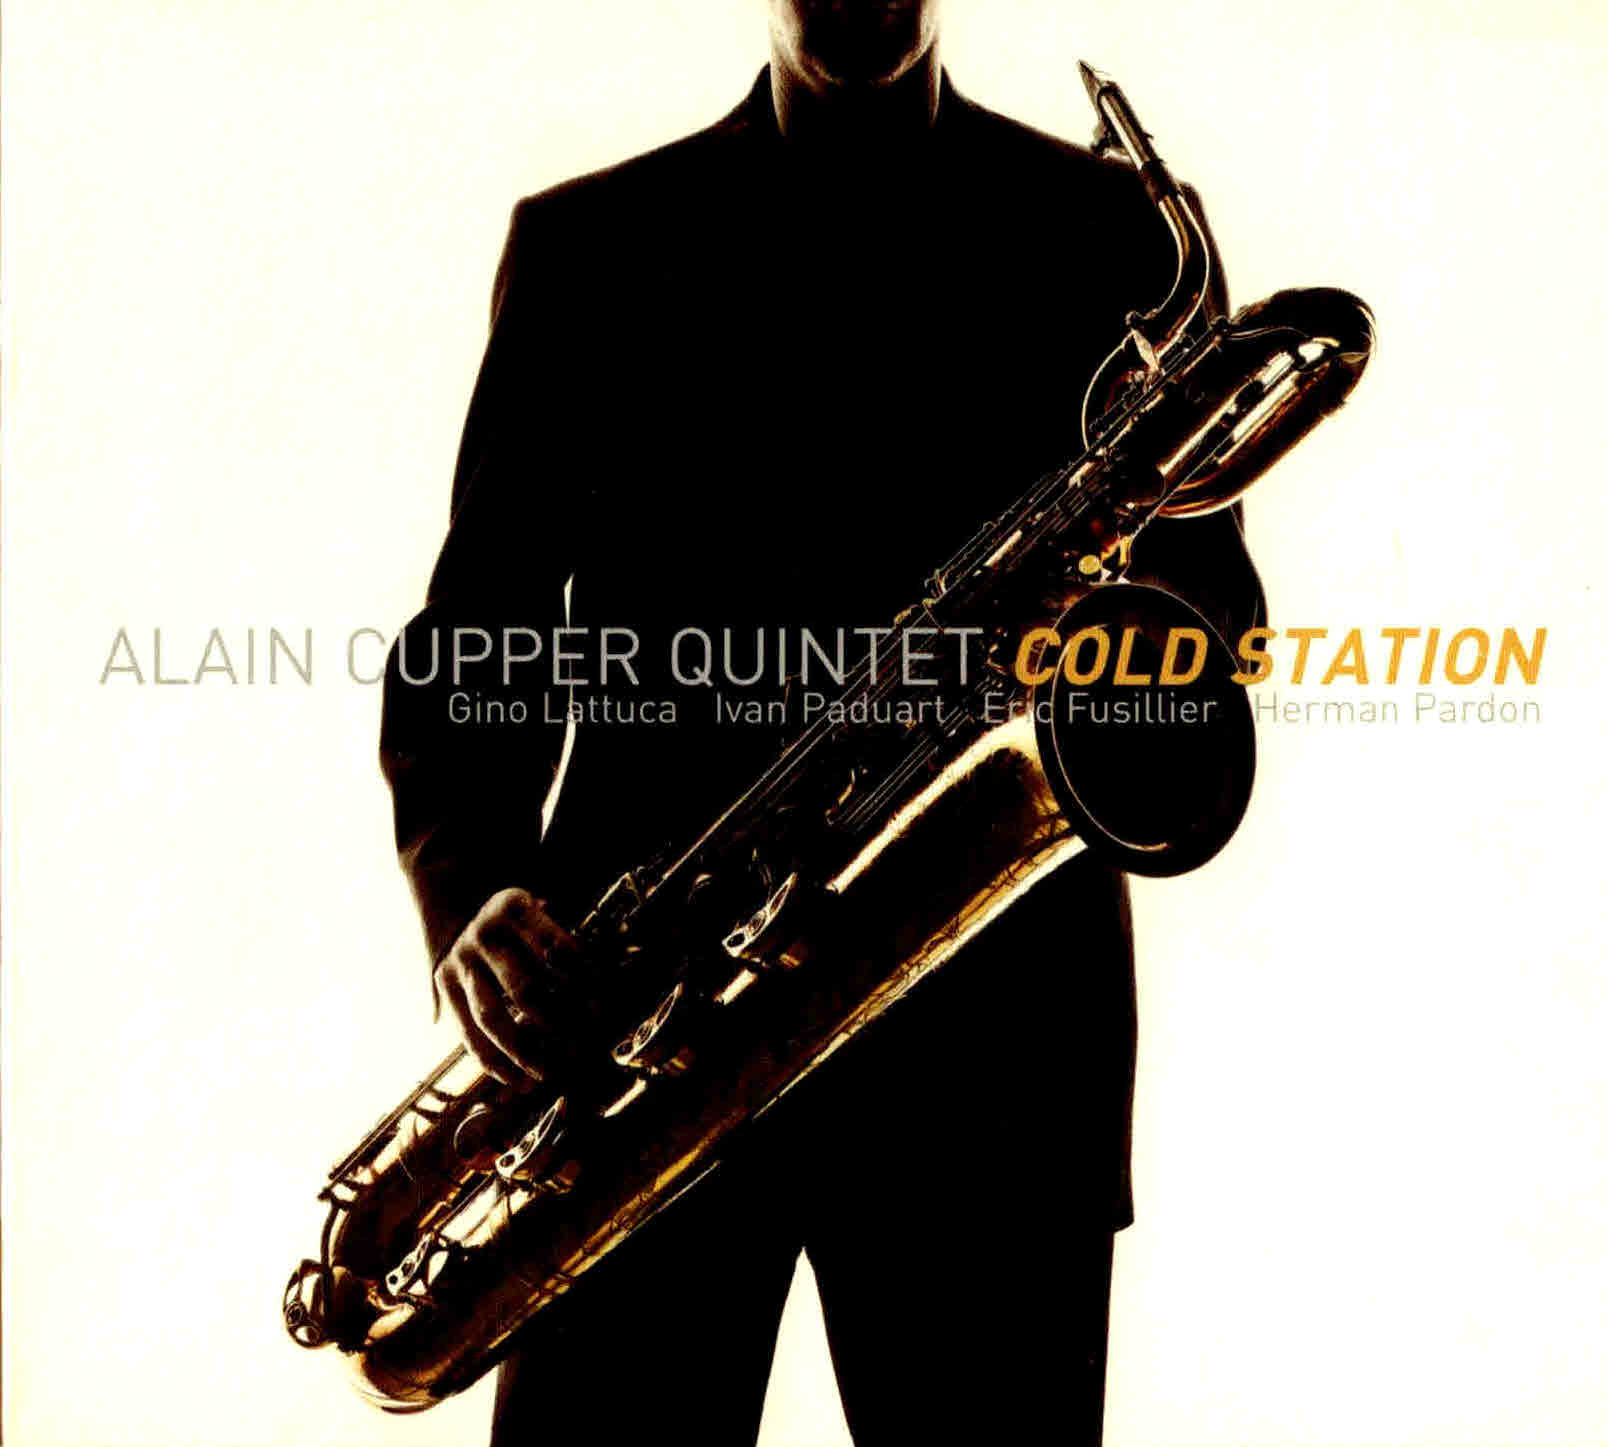 alain_cupper_cold_station